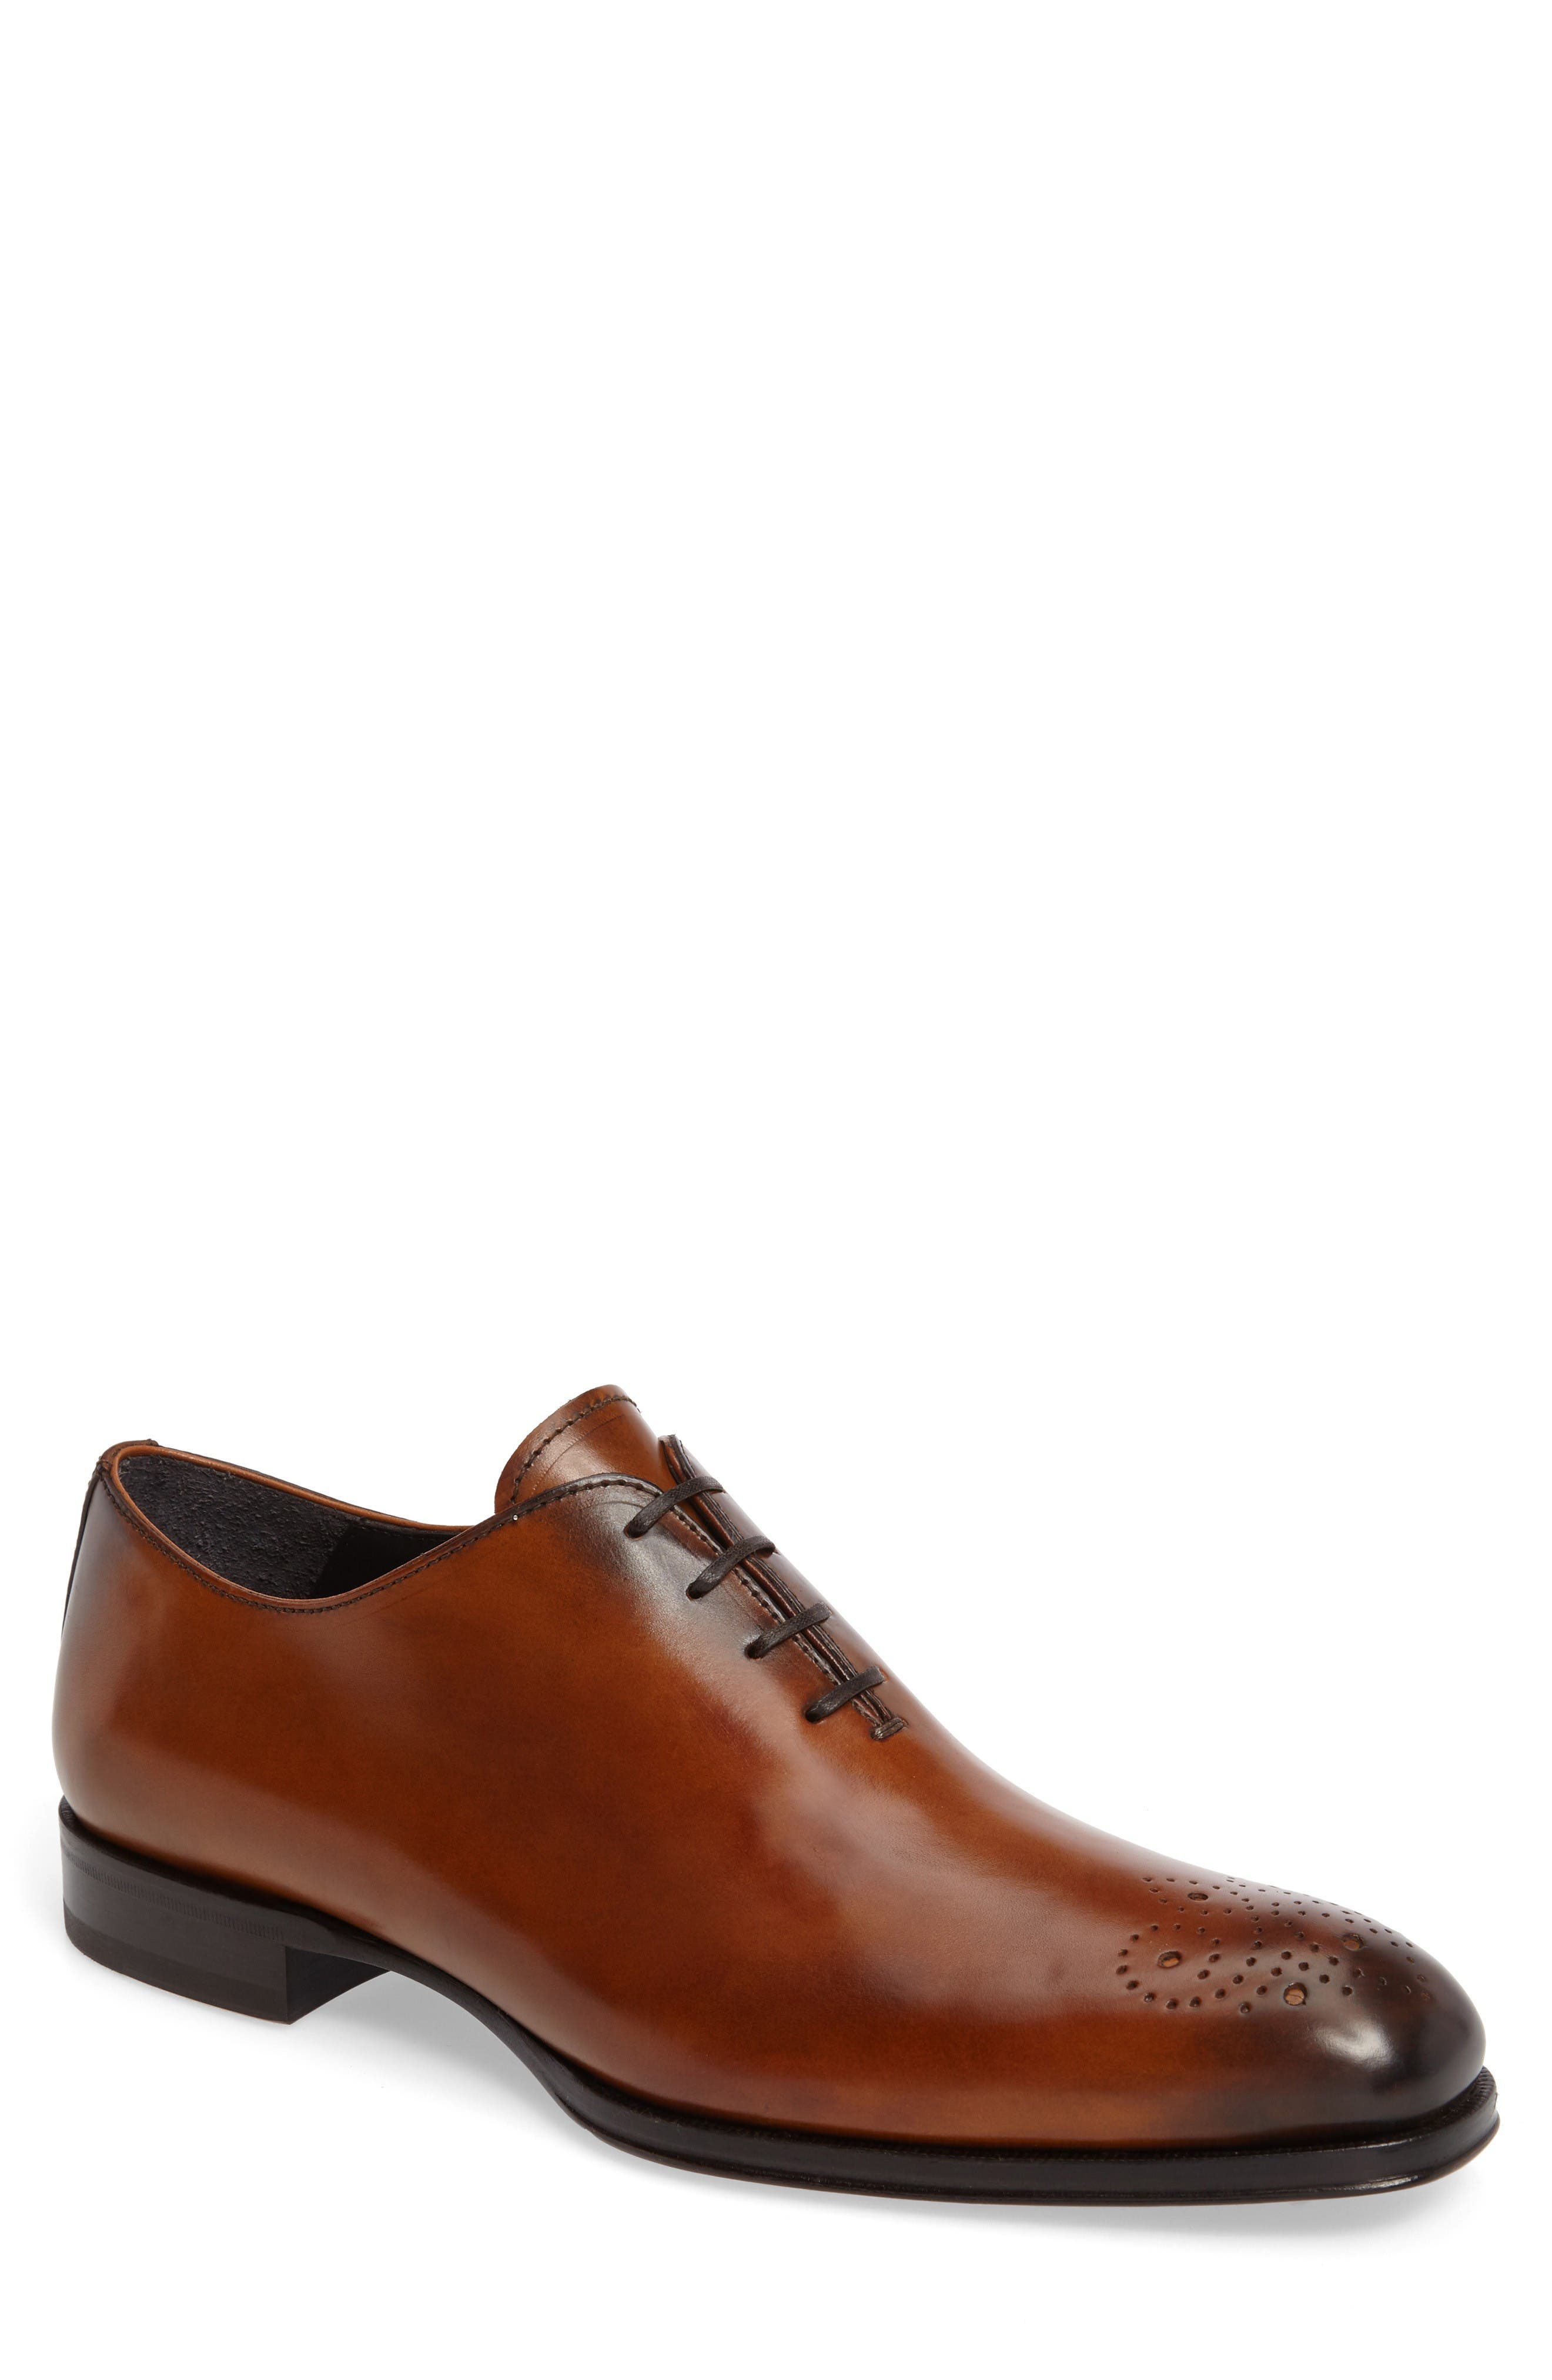 TO BOOT NEW YORK Bateman Brogue Oxford